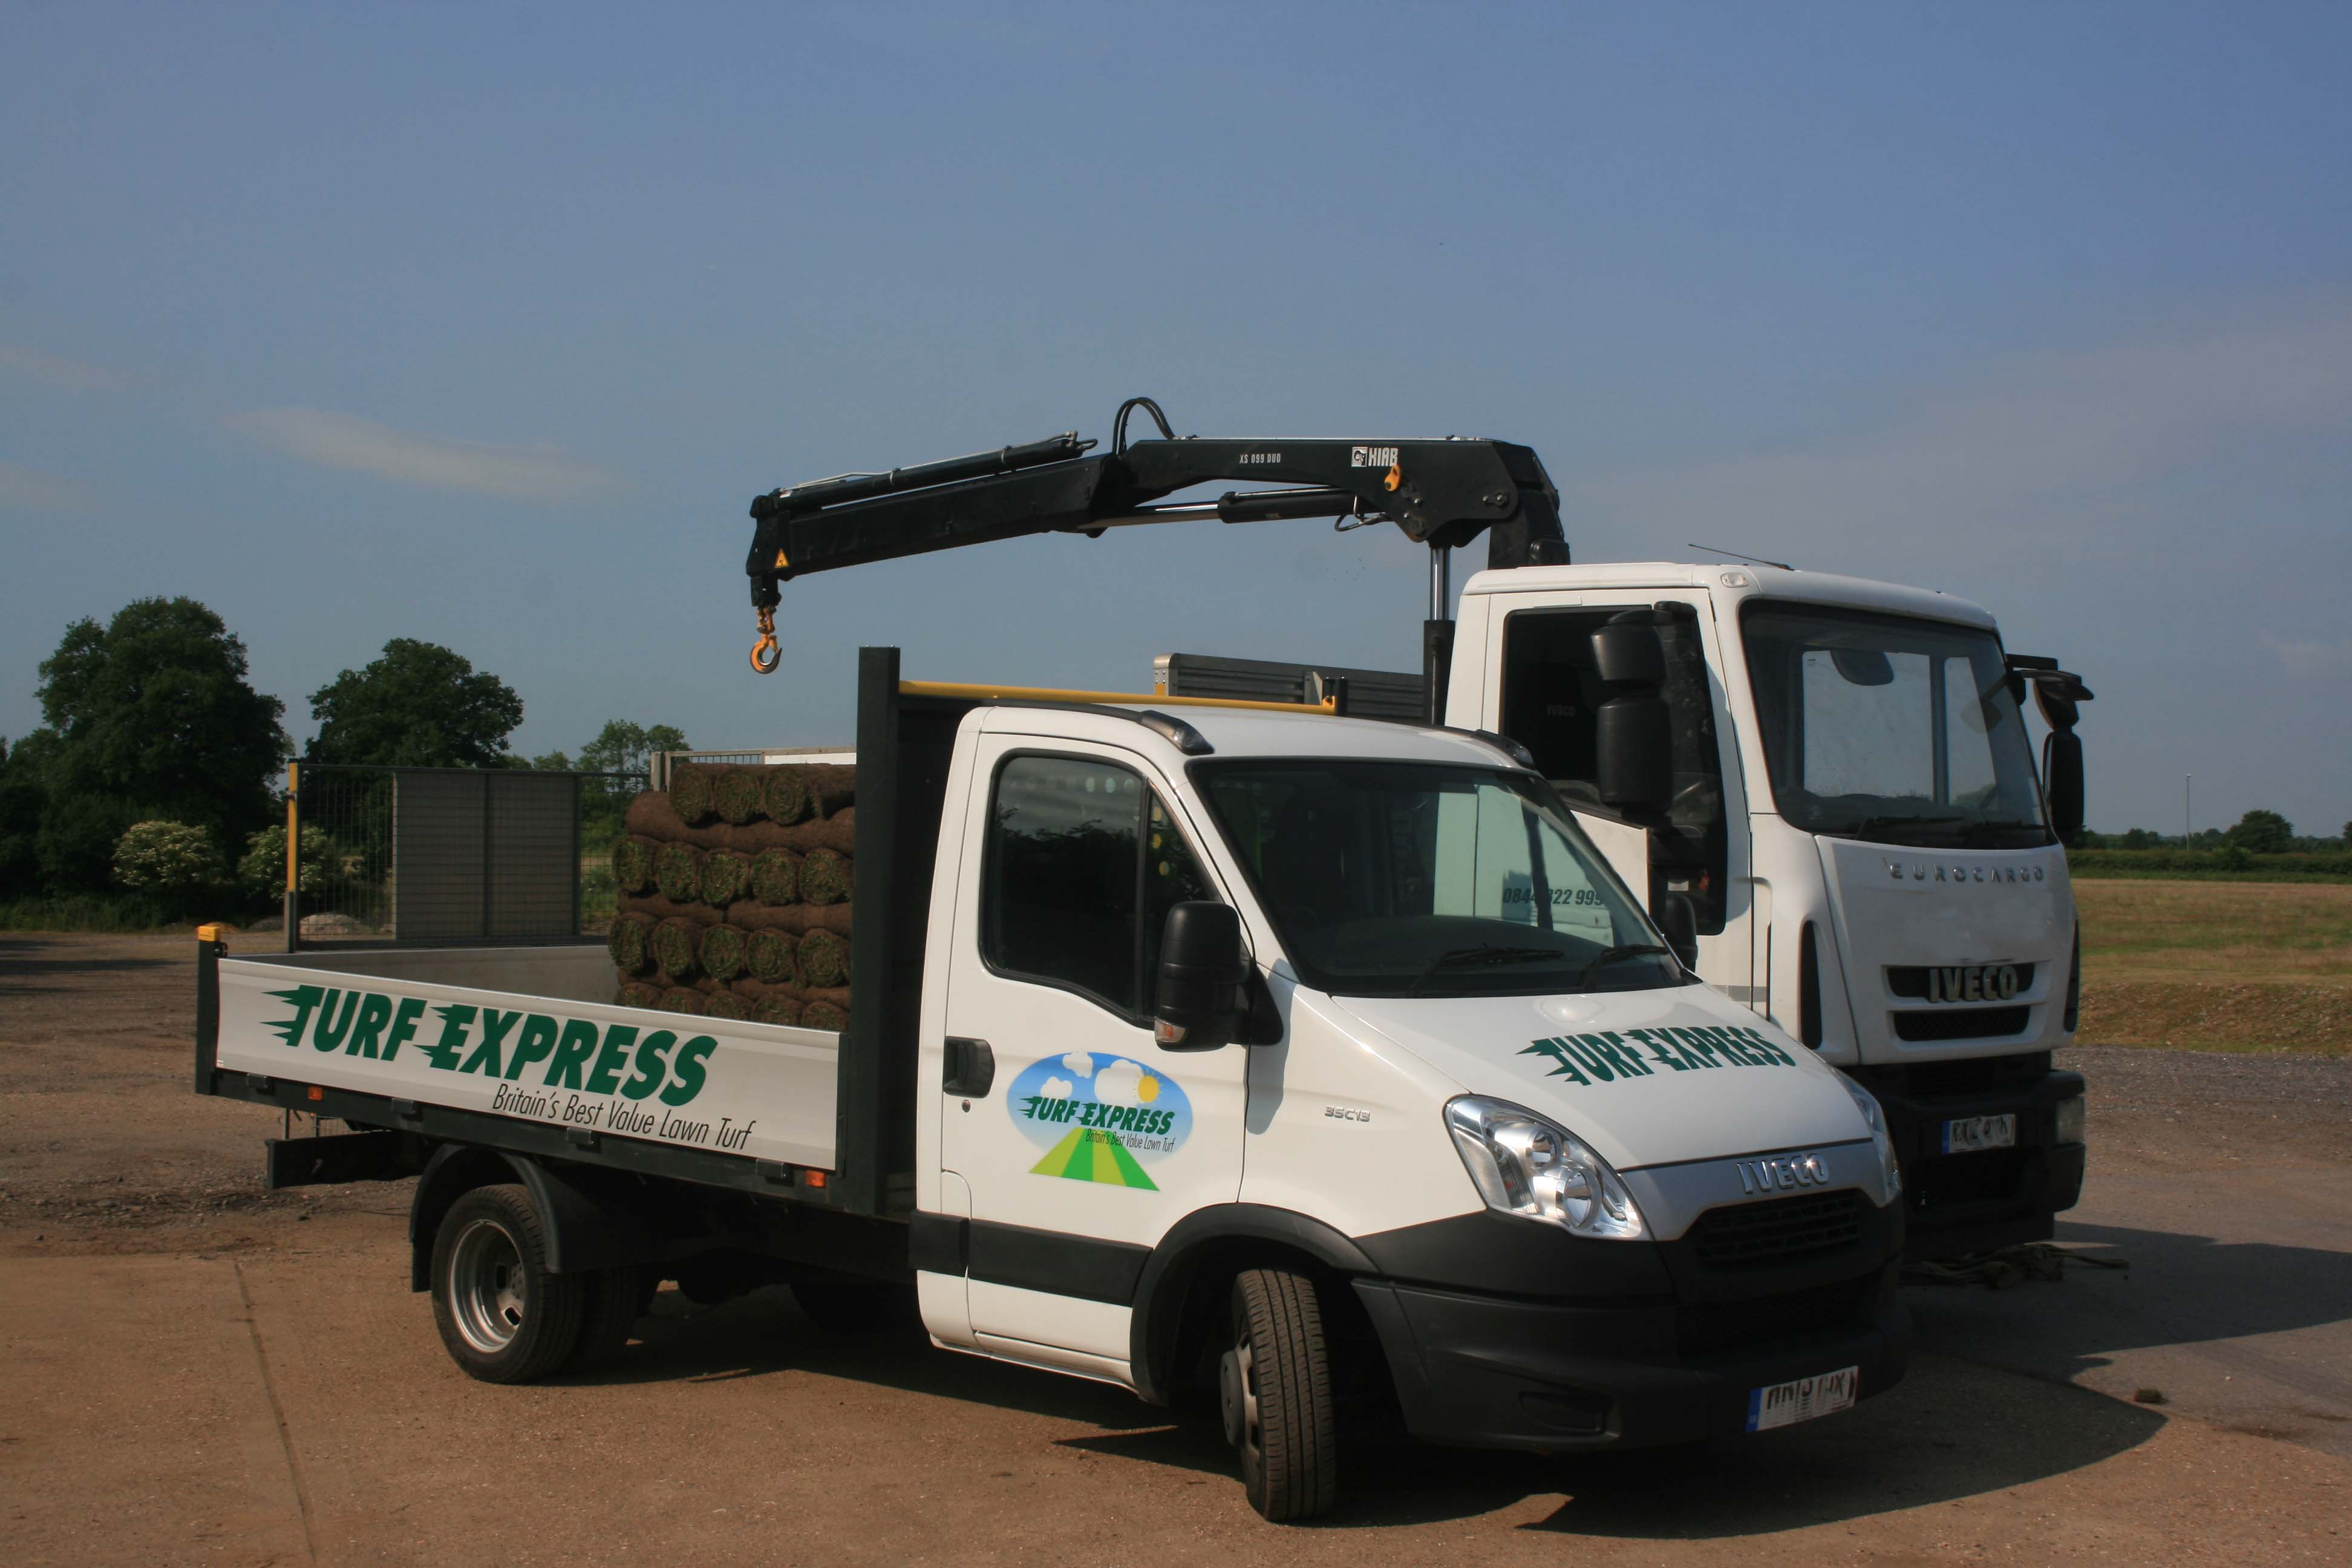 Turf Express delivery vehicle